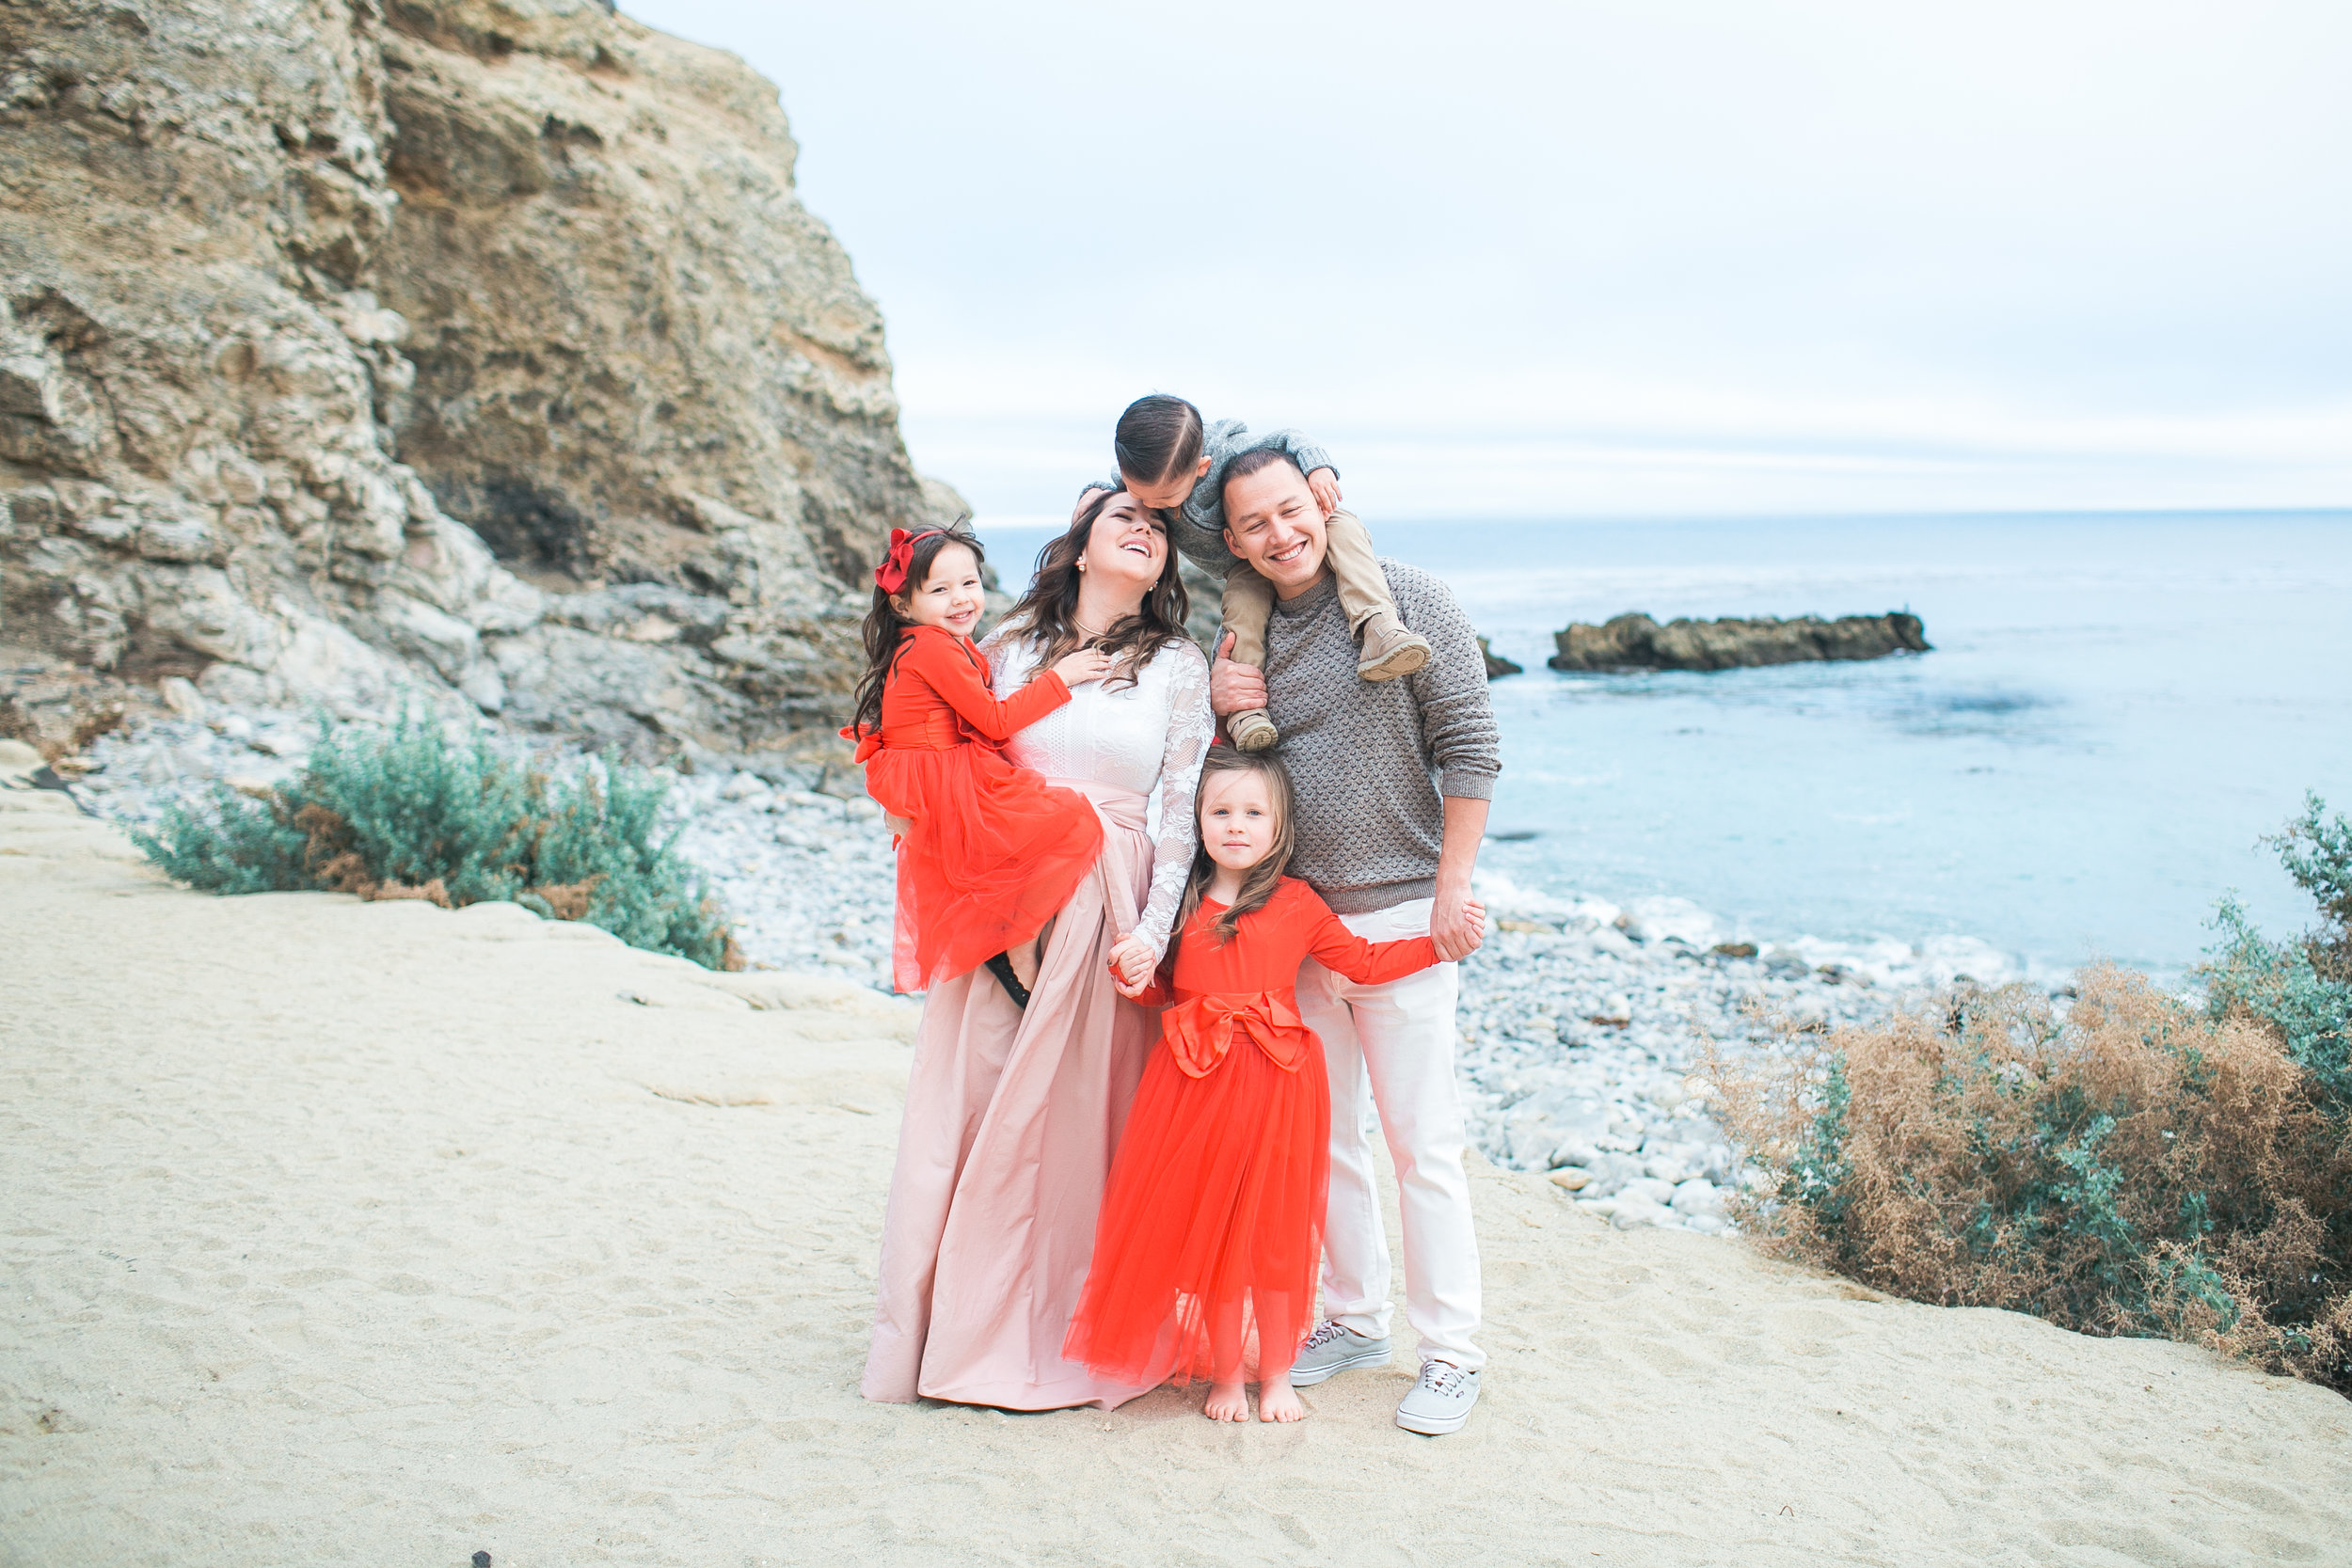 The Espinoza family :) Their outfits, the location, their love--everything so perfect!